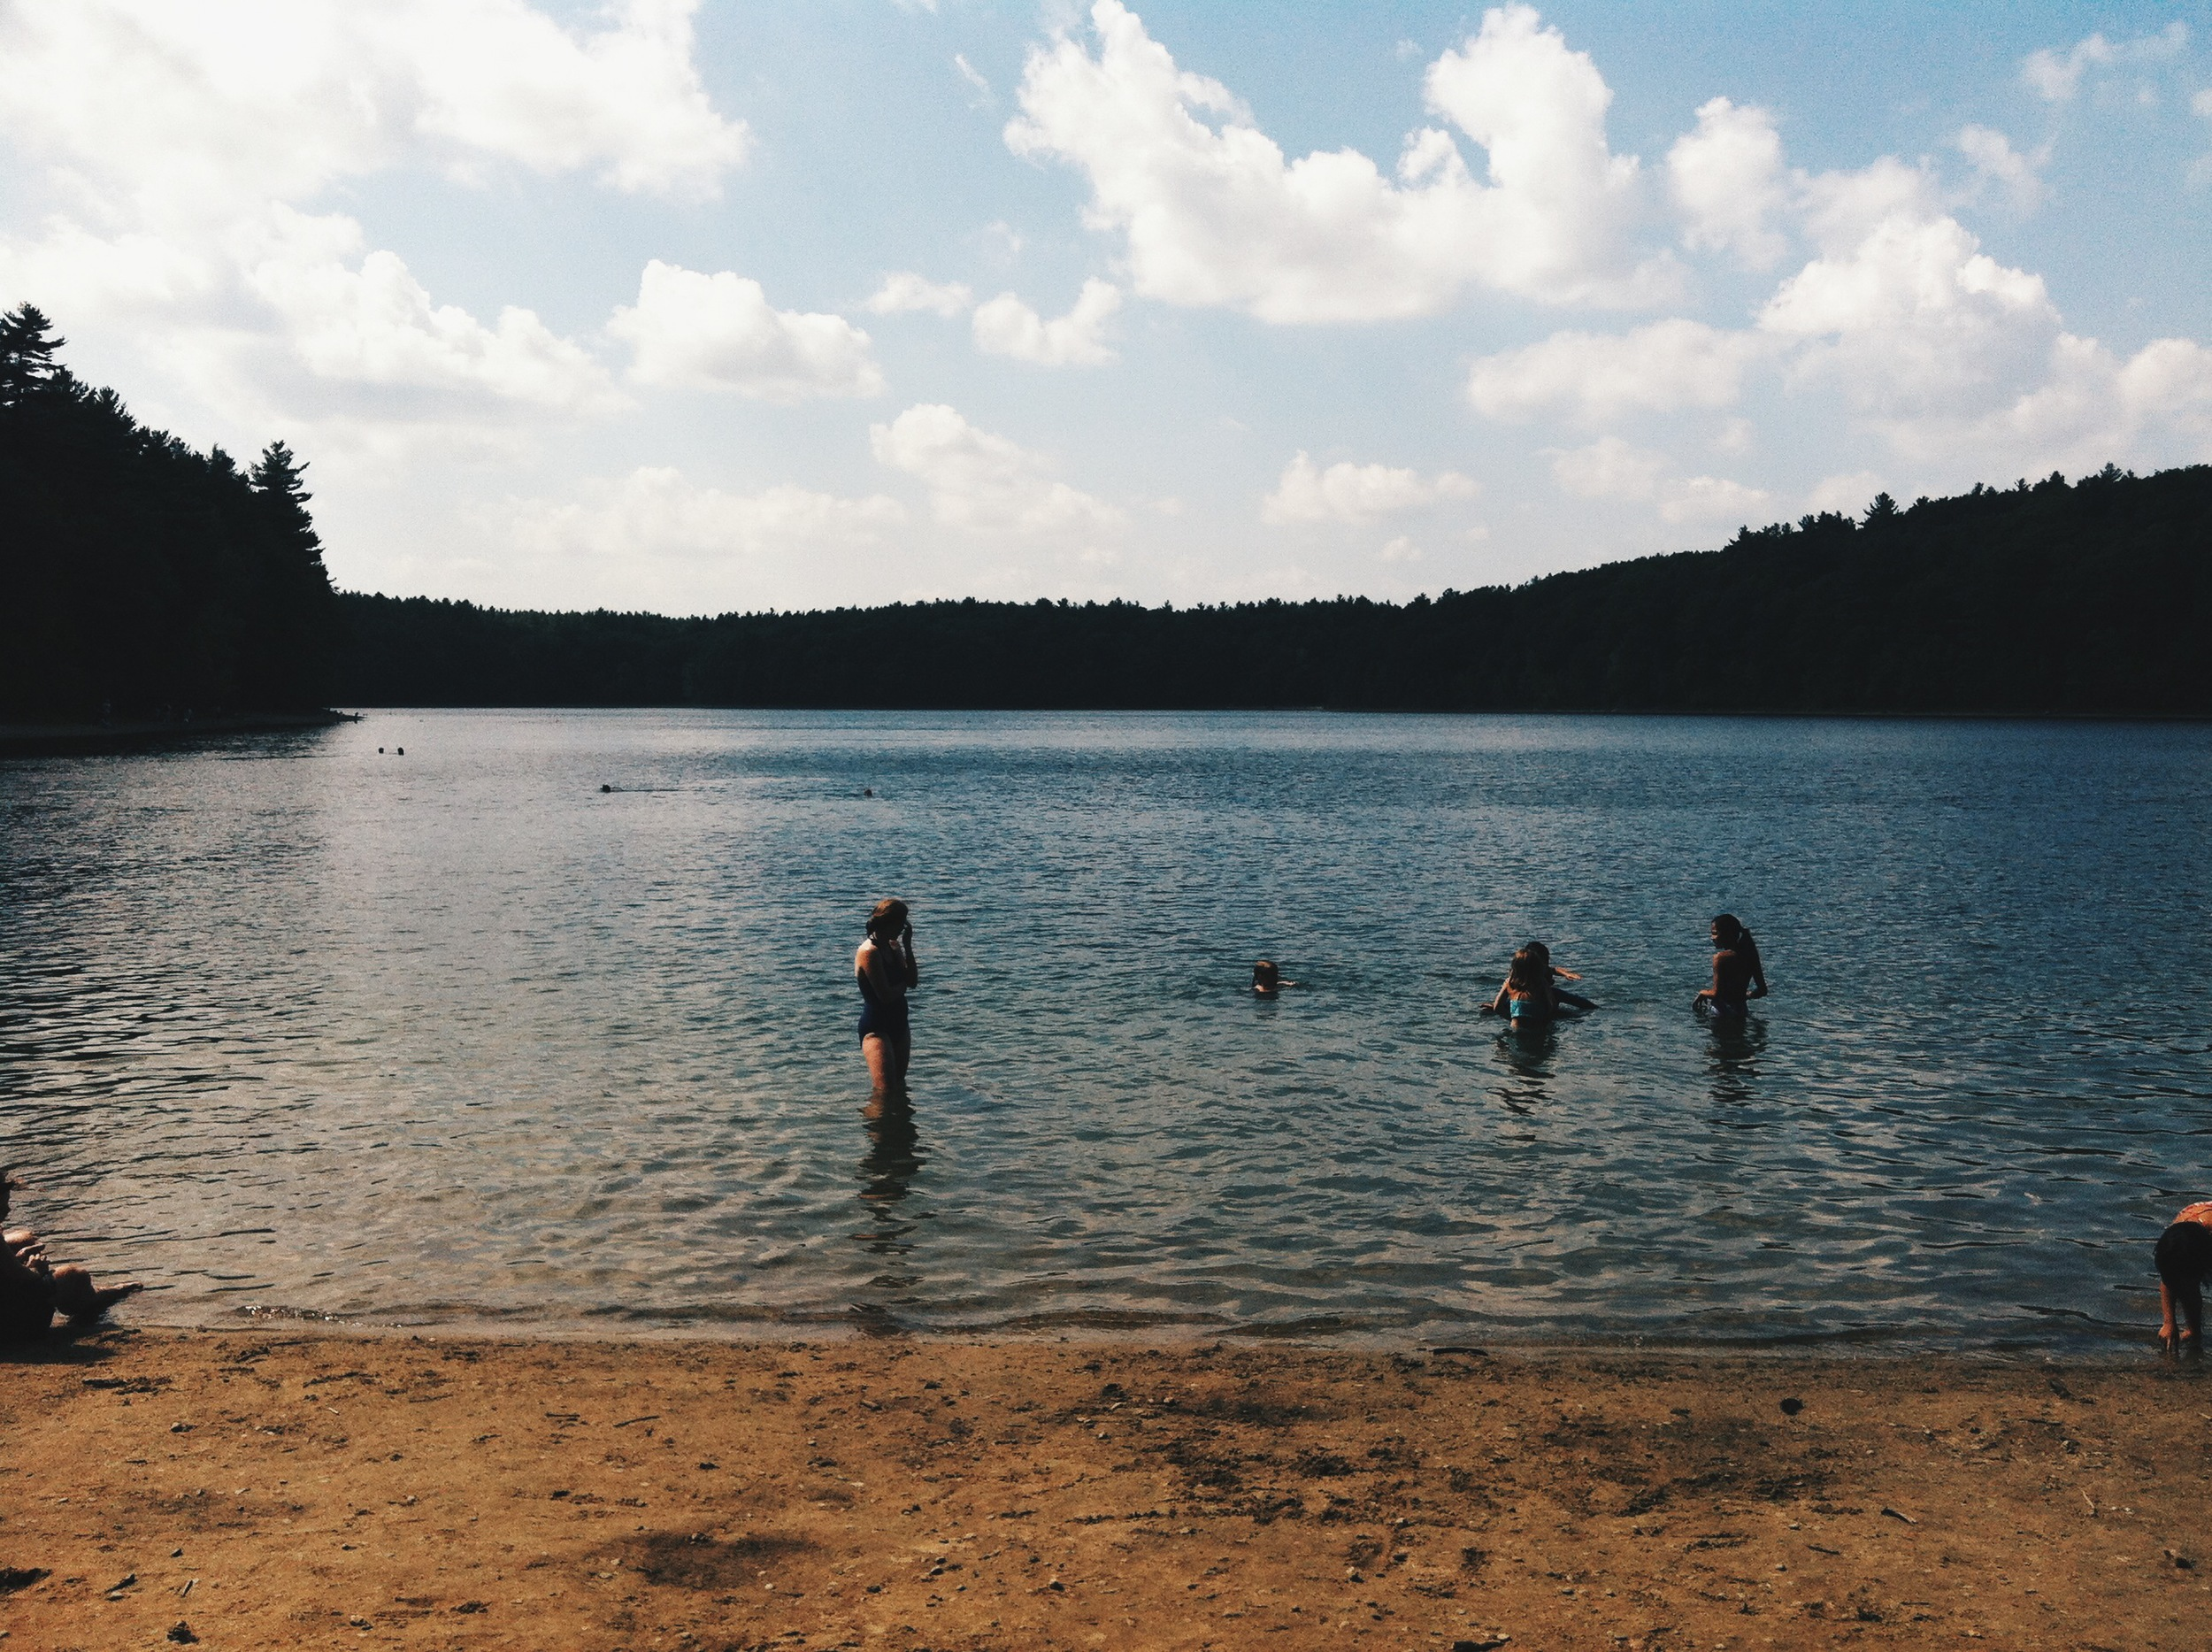 Walden's Pond in Concord, MA, was delightful, esp on a hot summer day